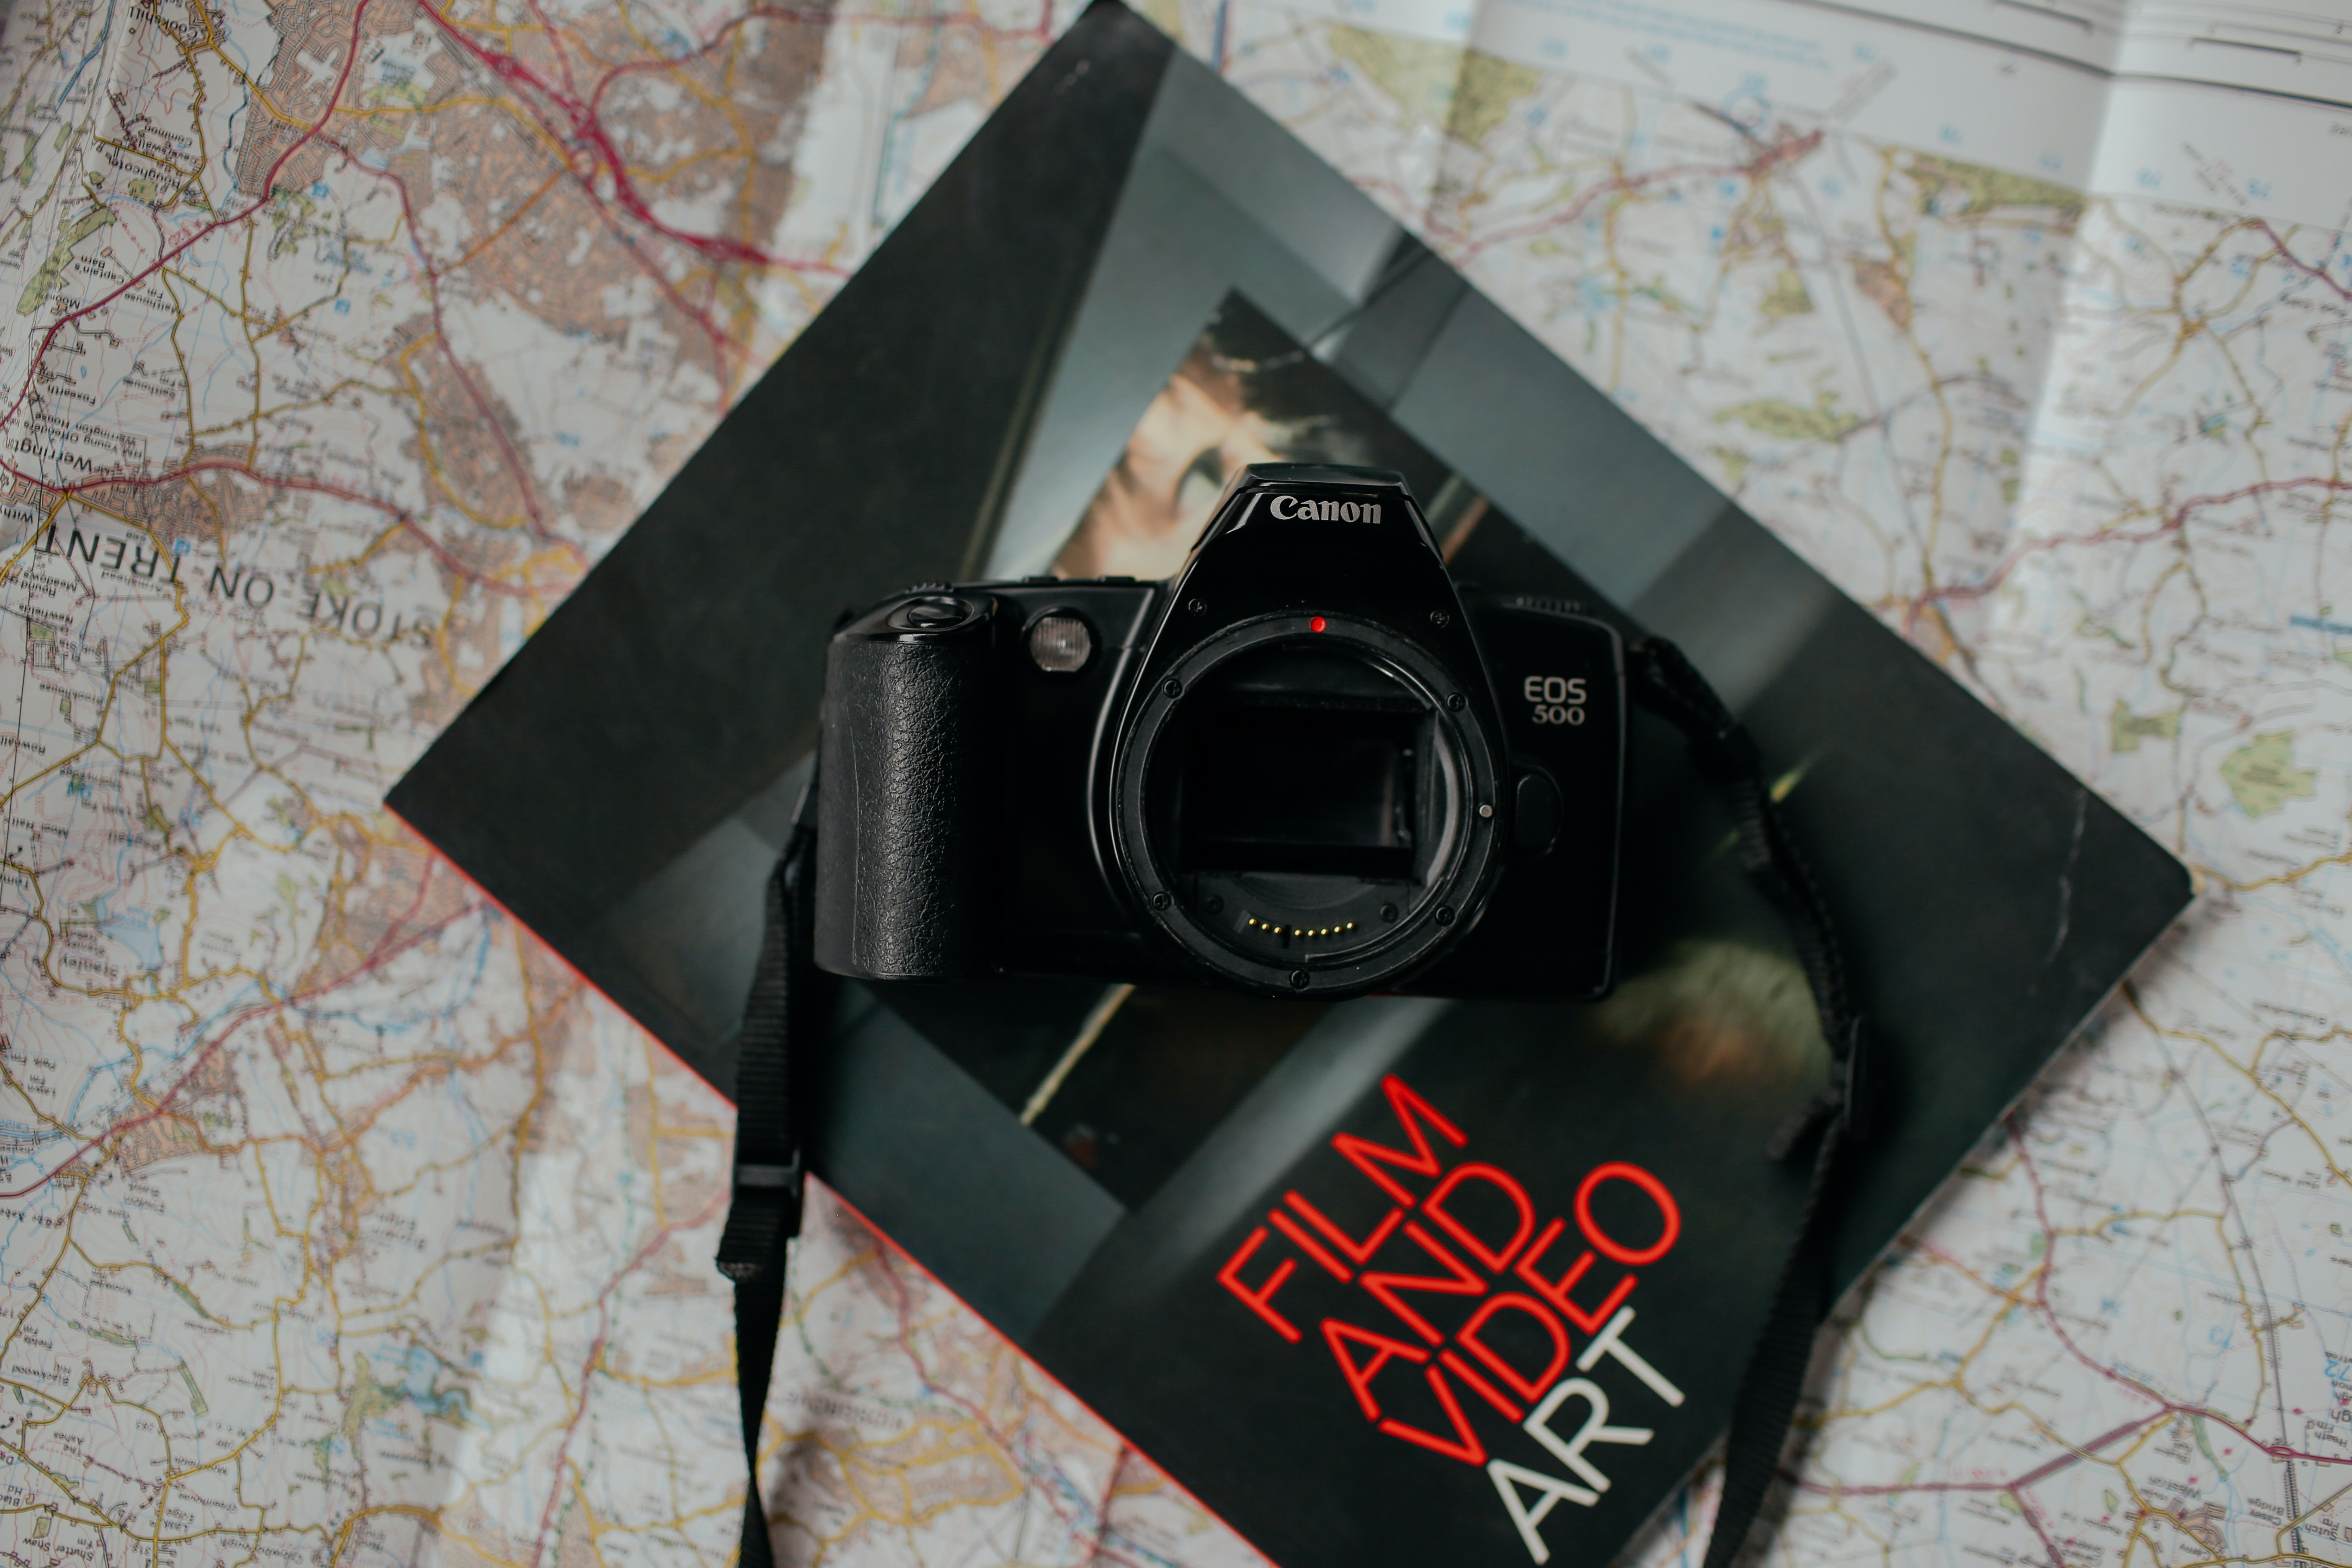 black Canon DSLR camera on top of black book